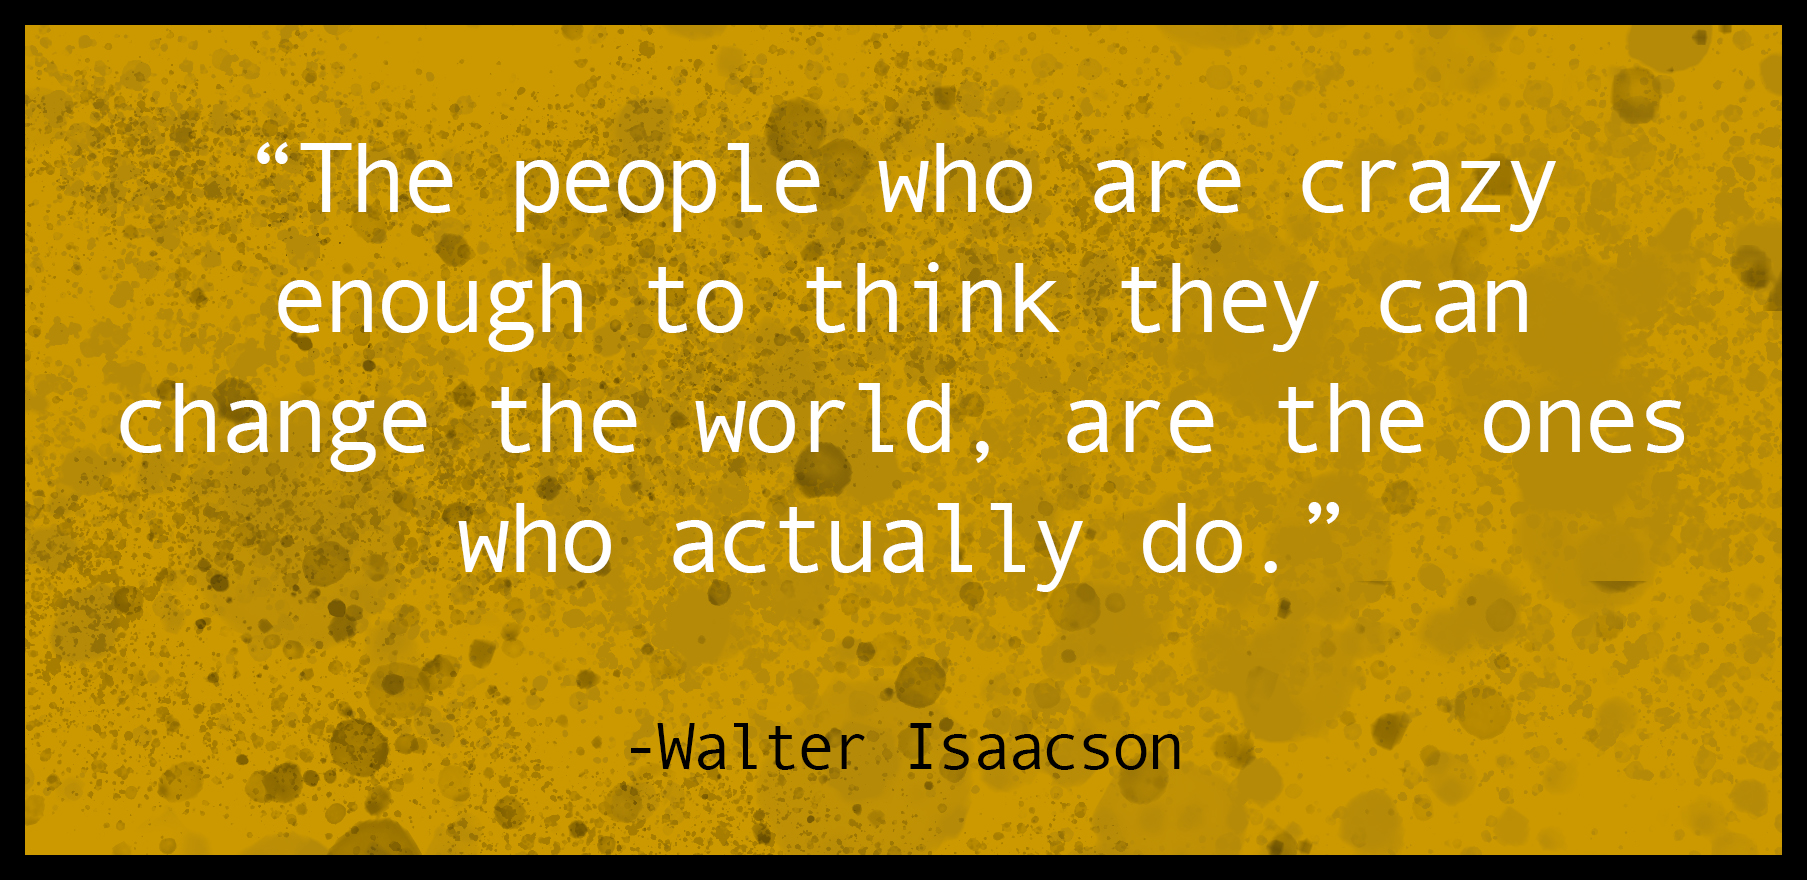 Image of a quote by Walter Isaacson